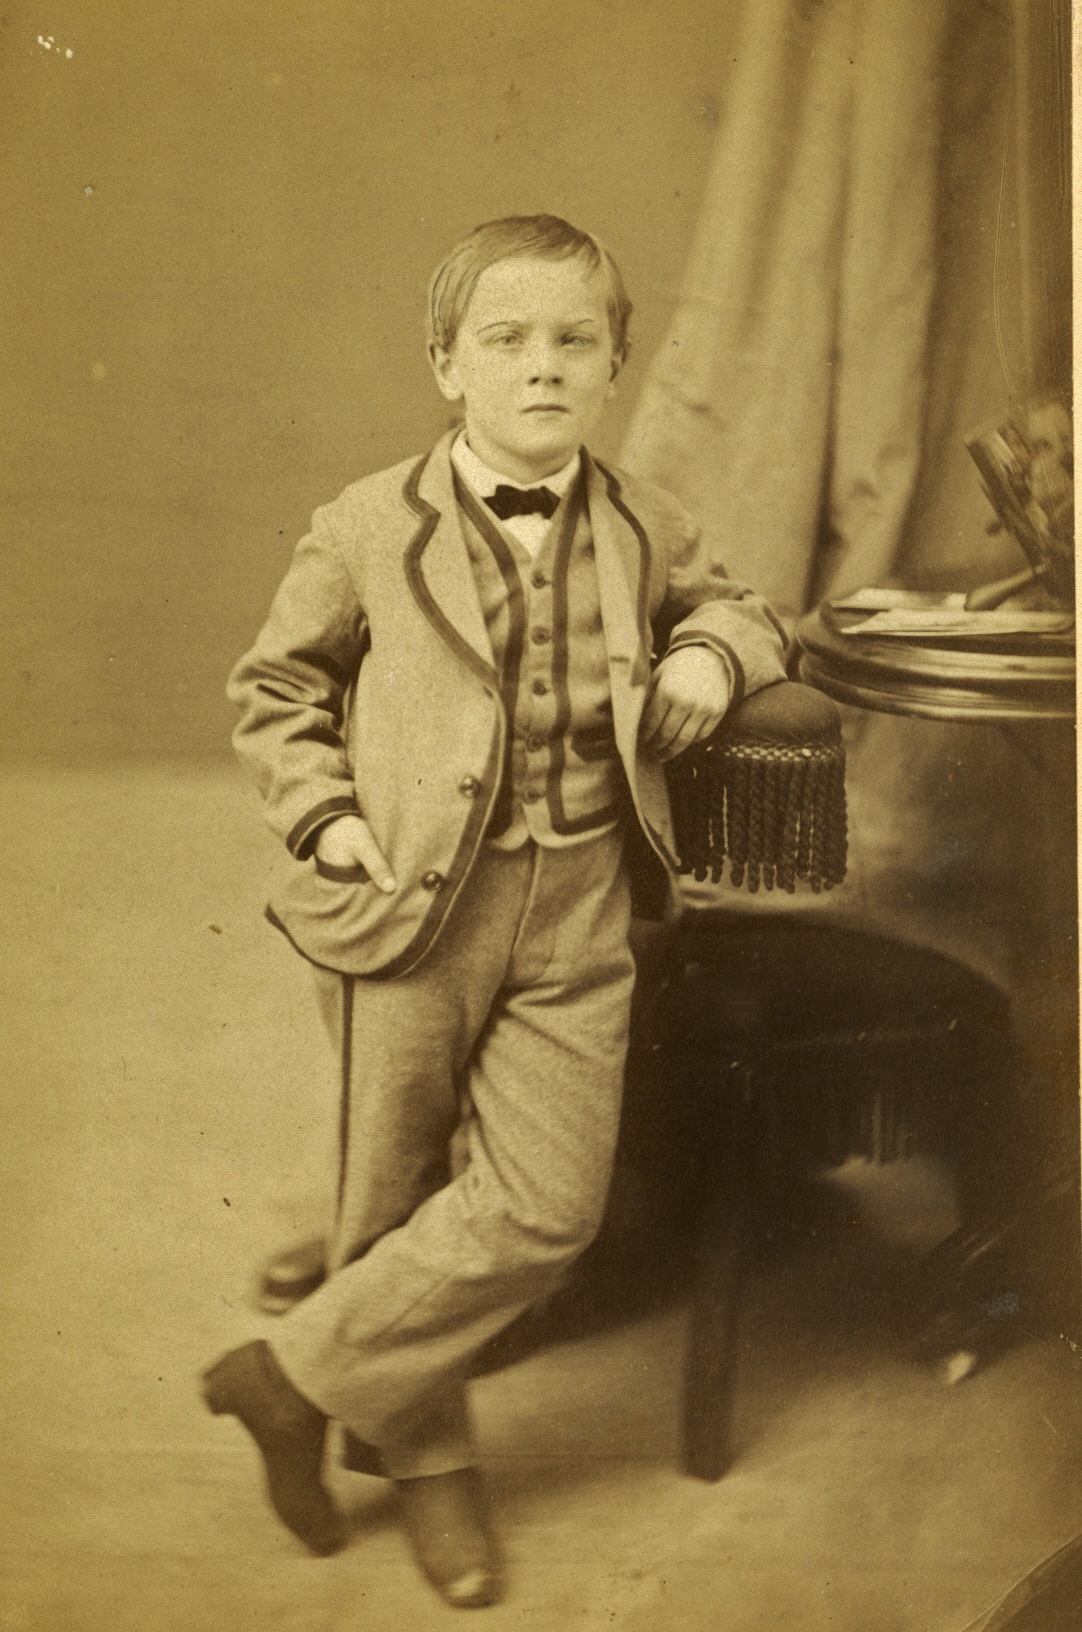 Style of child's suit sold at Pearce & Marett's